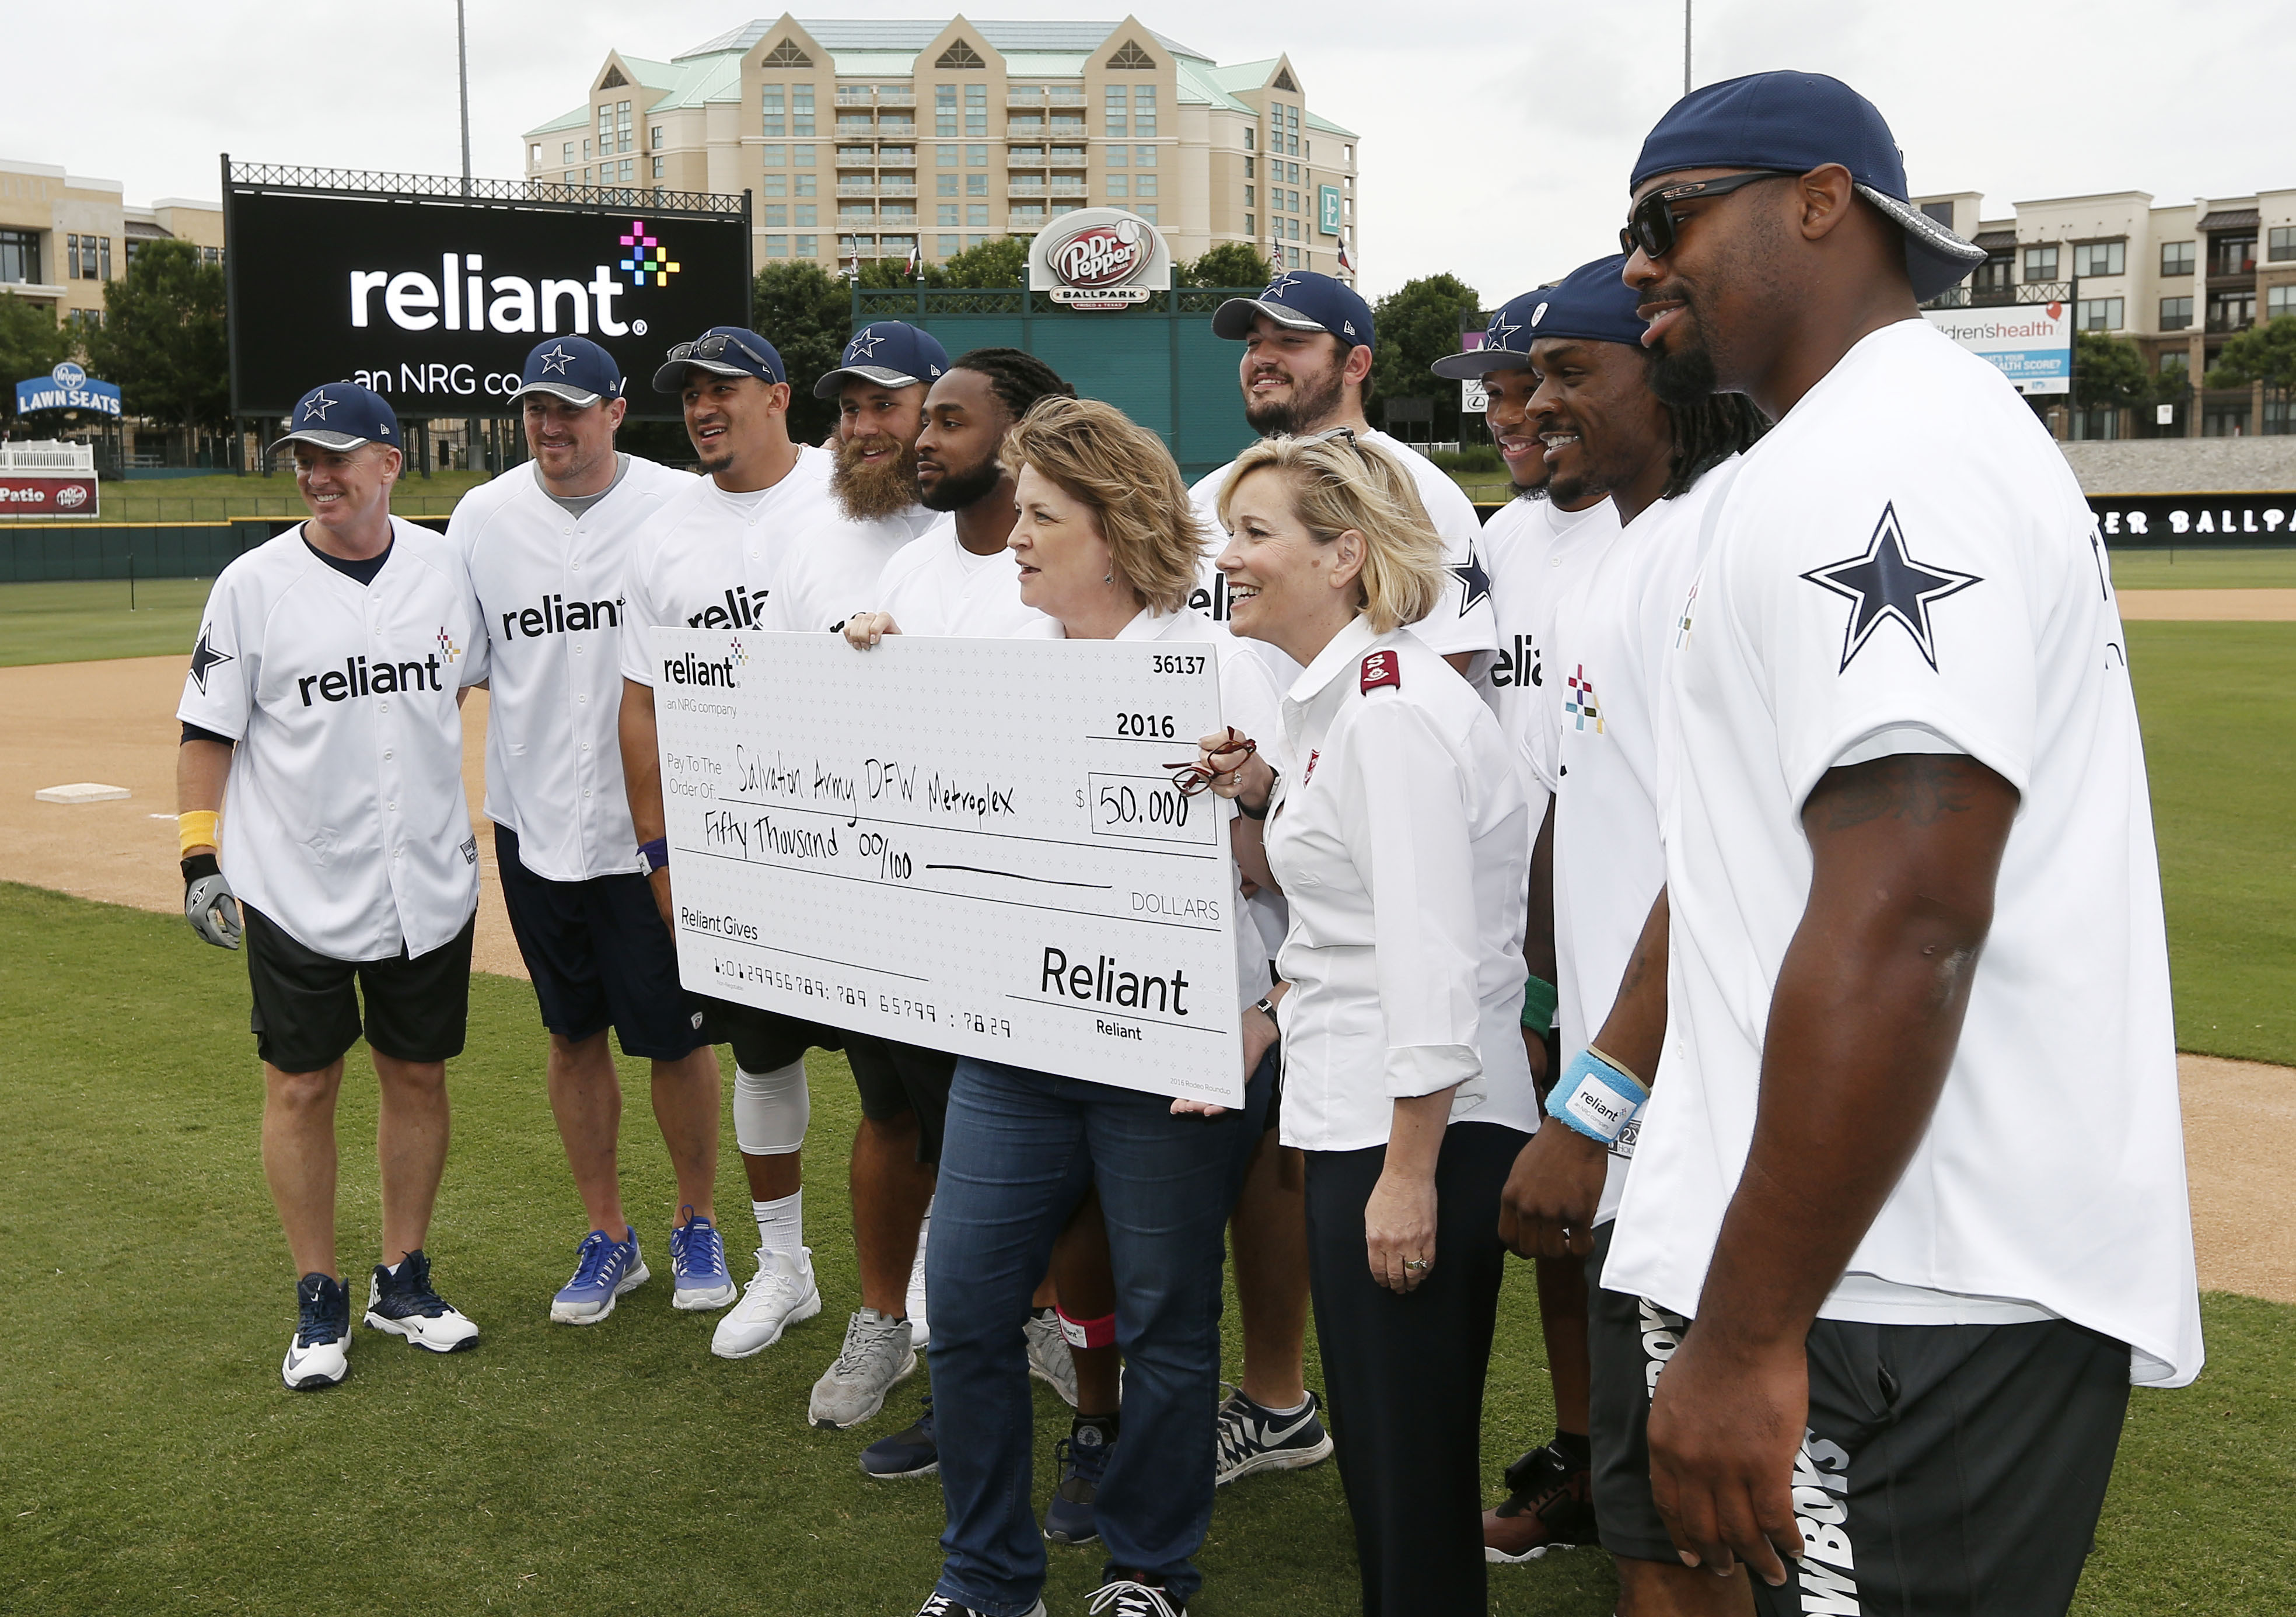 Swing Batter Batter Reliant Home Run Derby with Dallas Cowboys